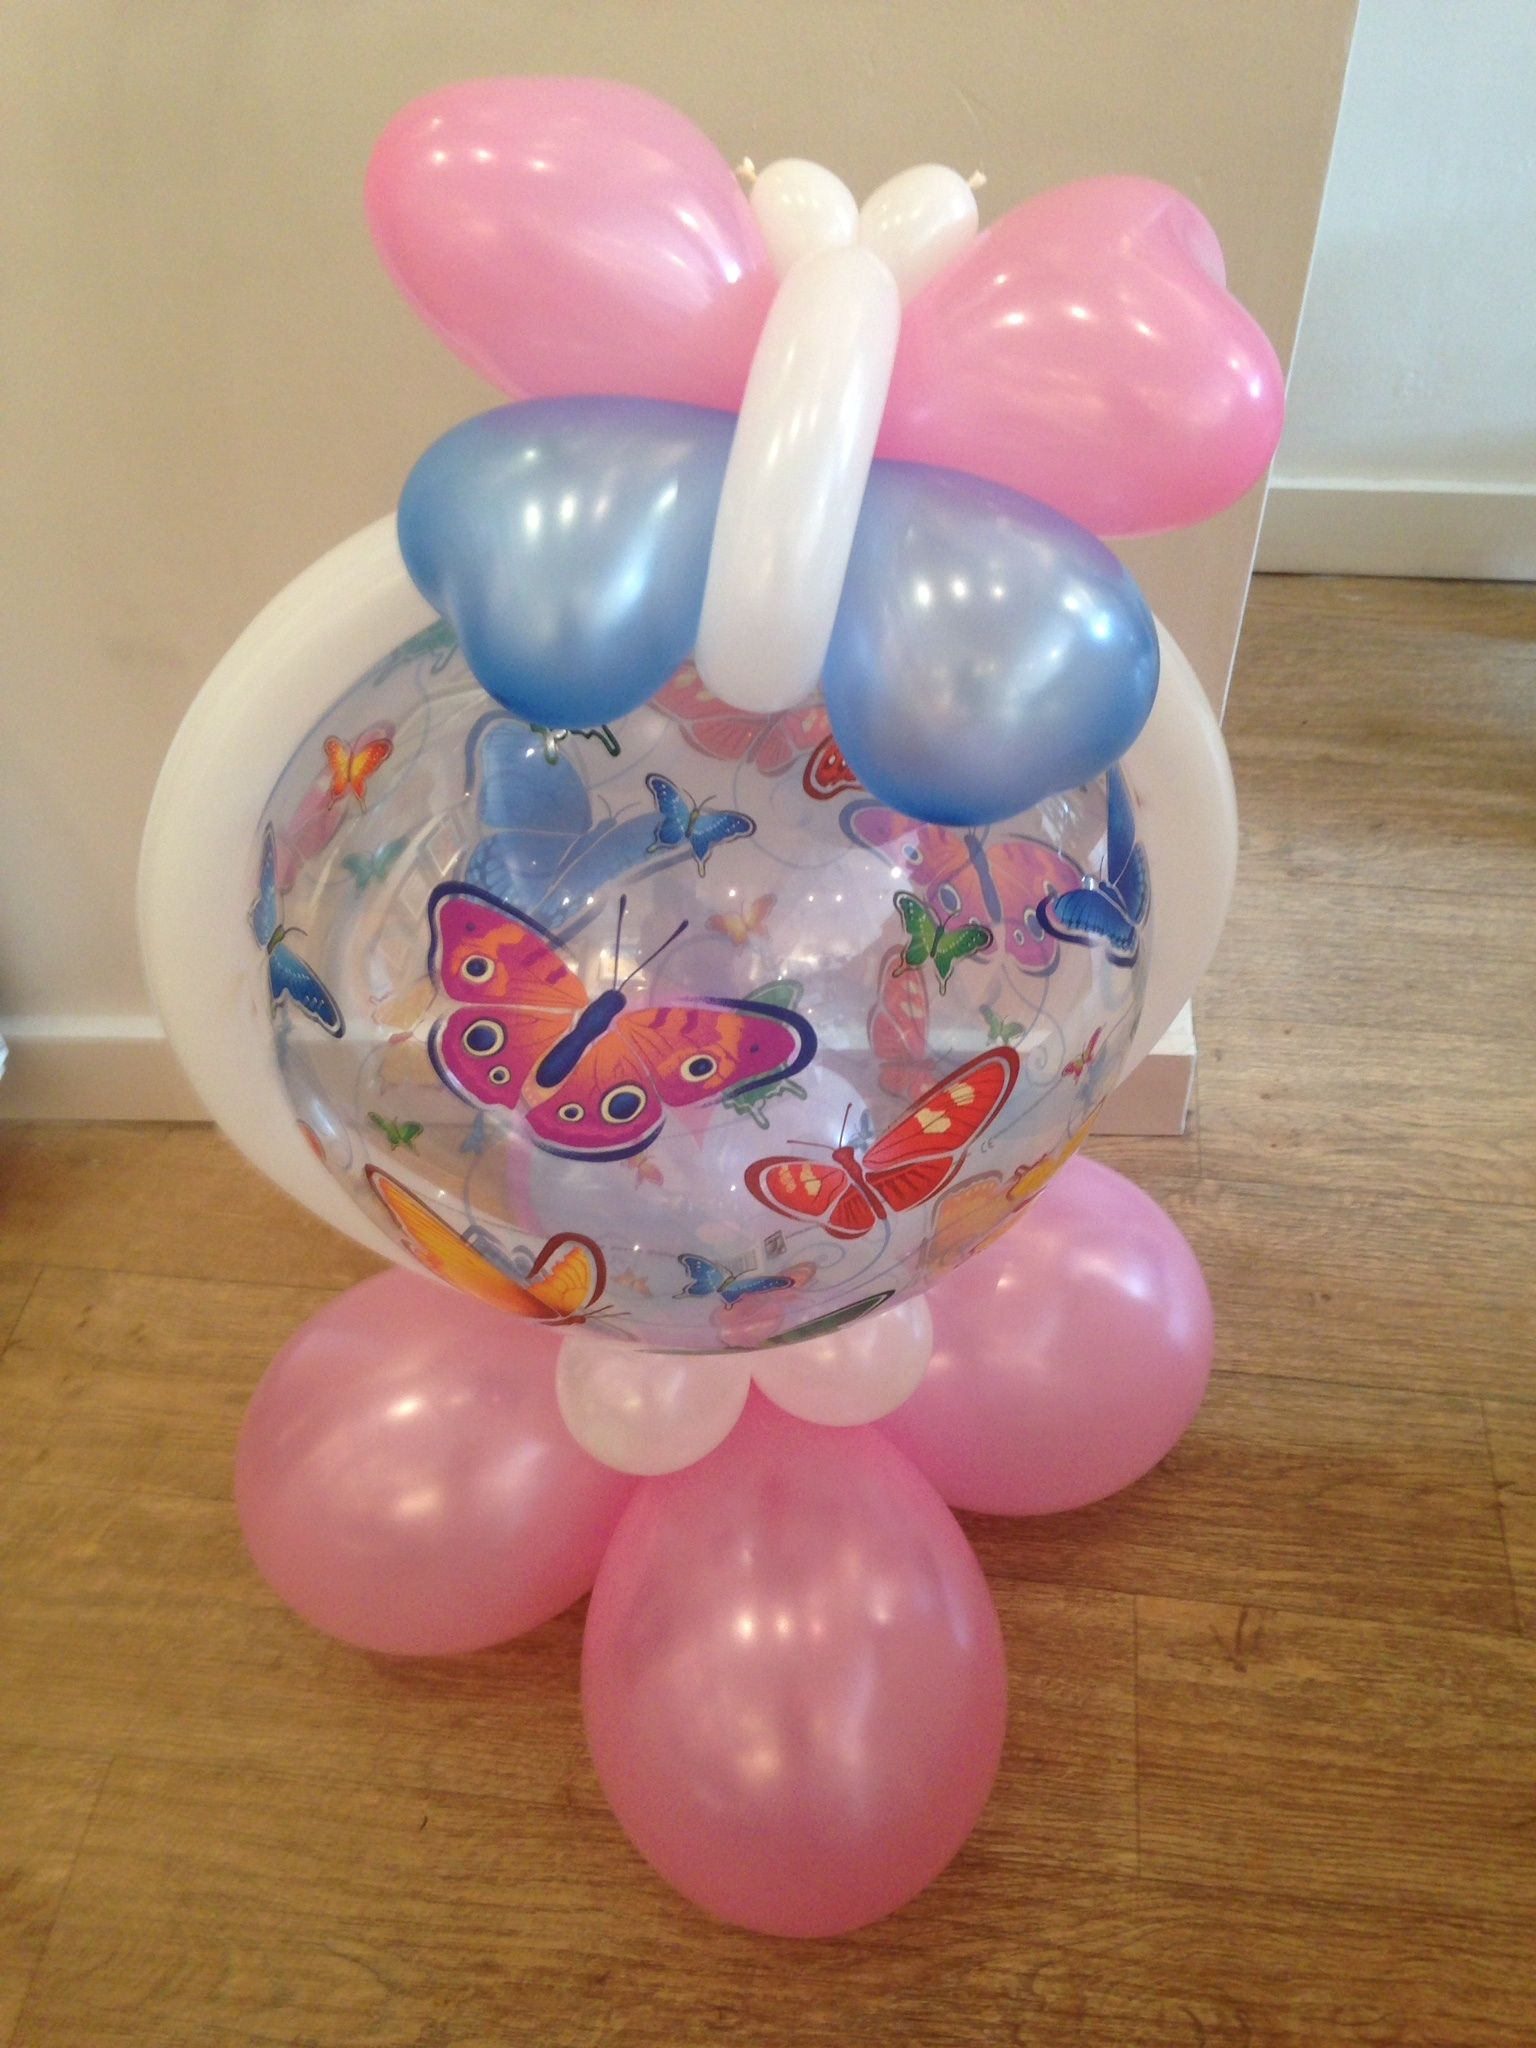 Air filled balloon from www.kaleidoscopehungerford.co.uk